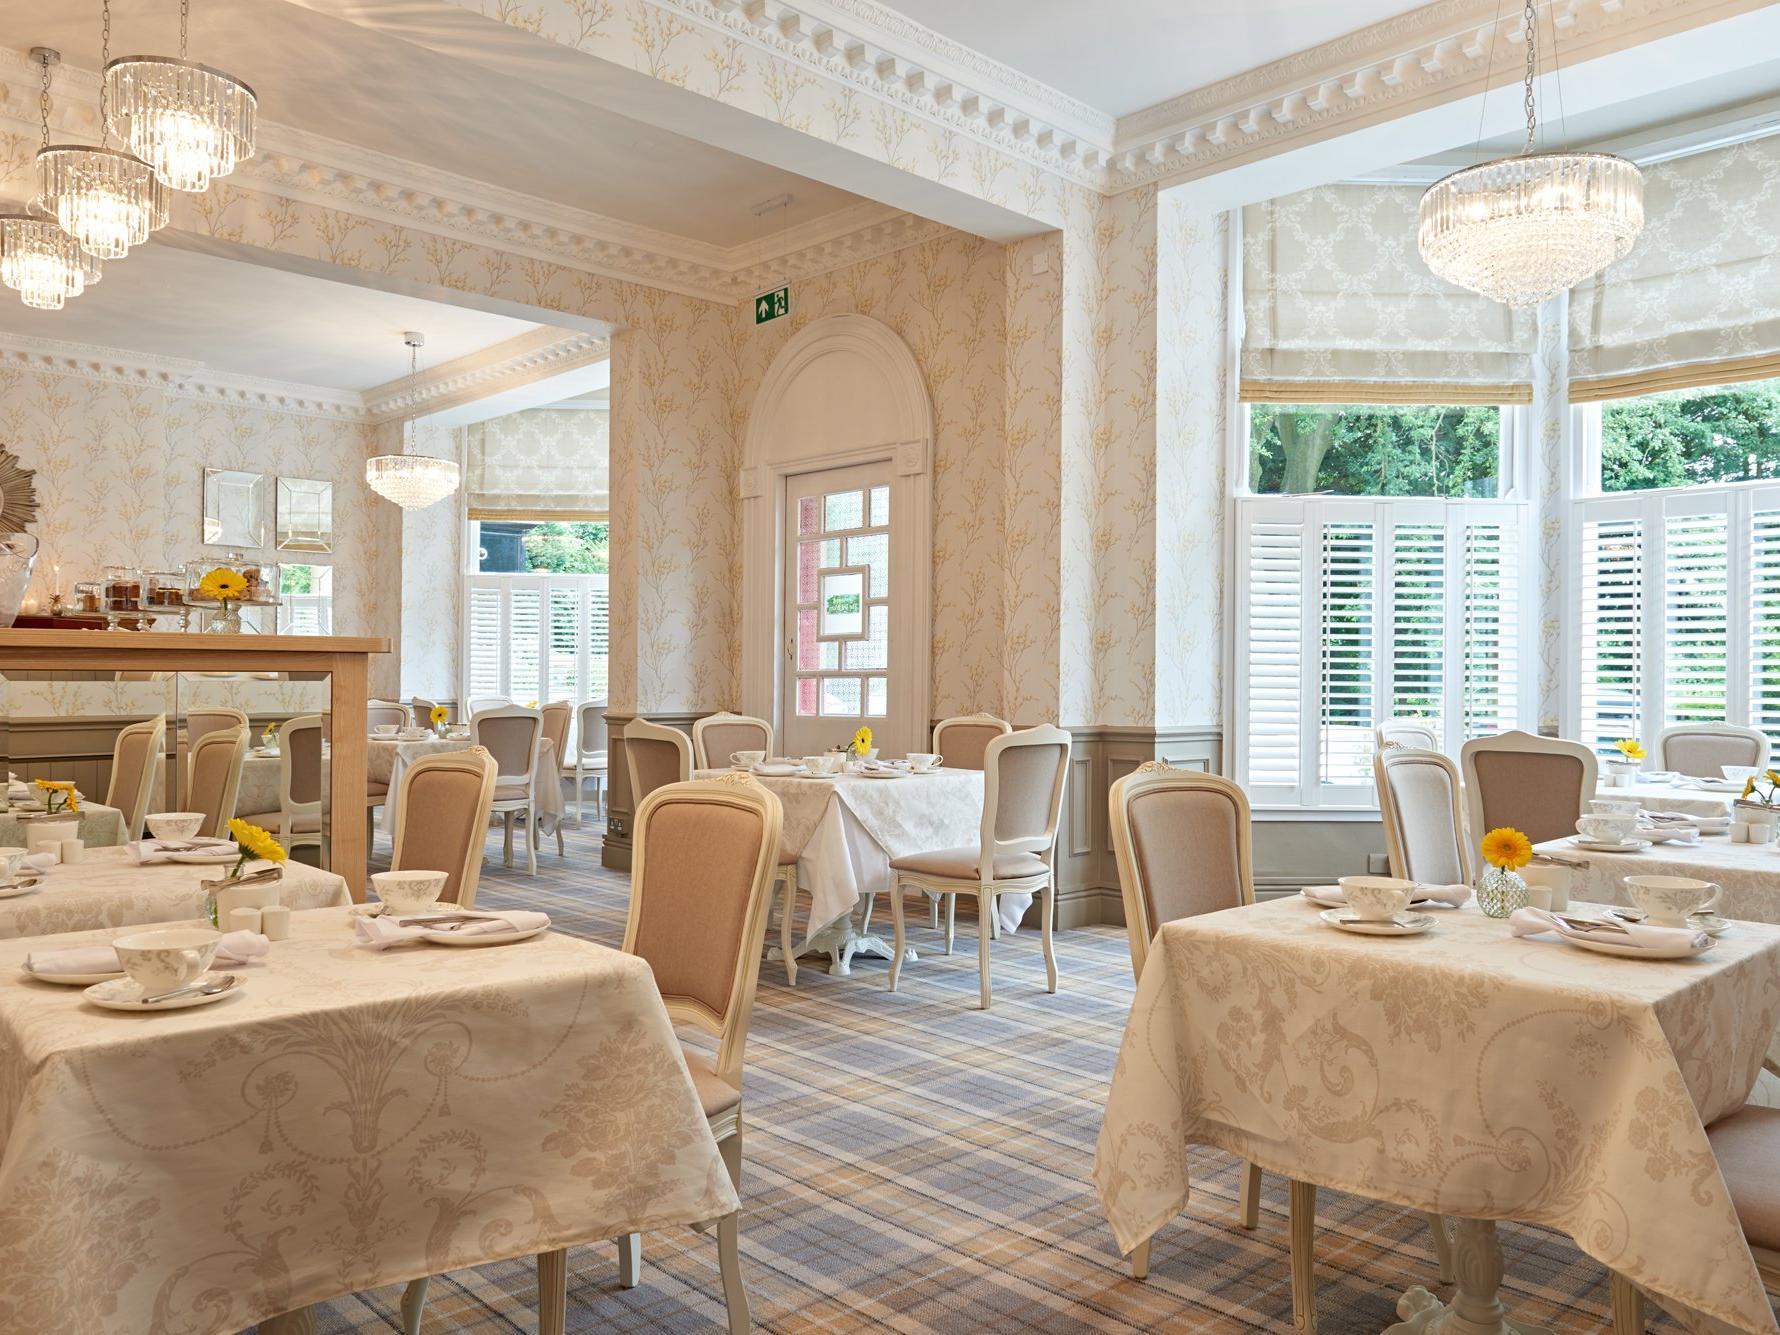 Tea rooms in Solihull at Laura Ashley afternoon tea